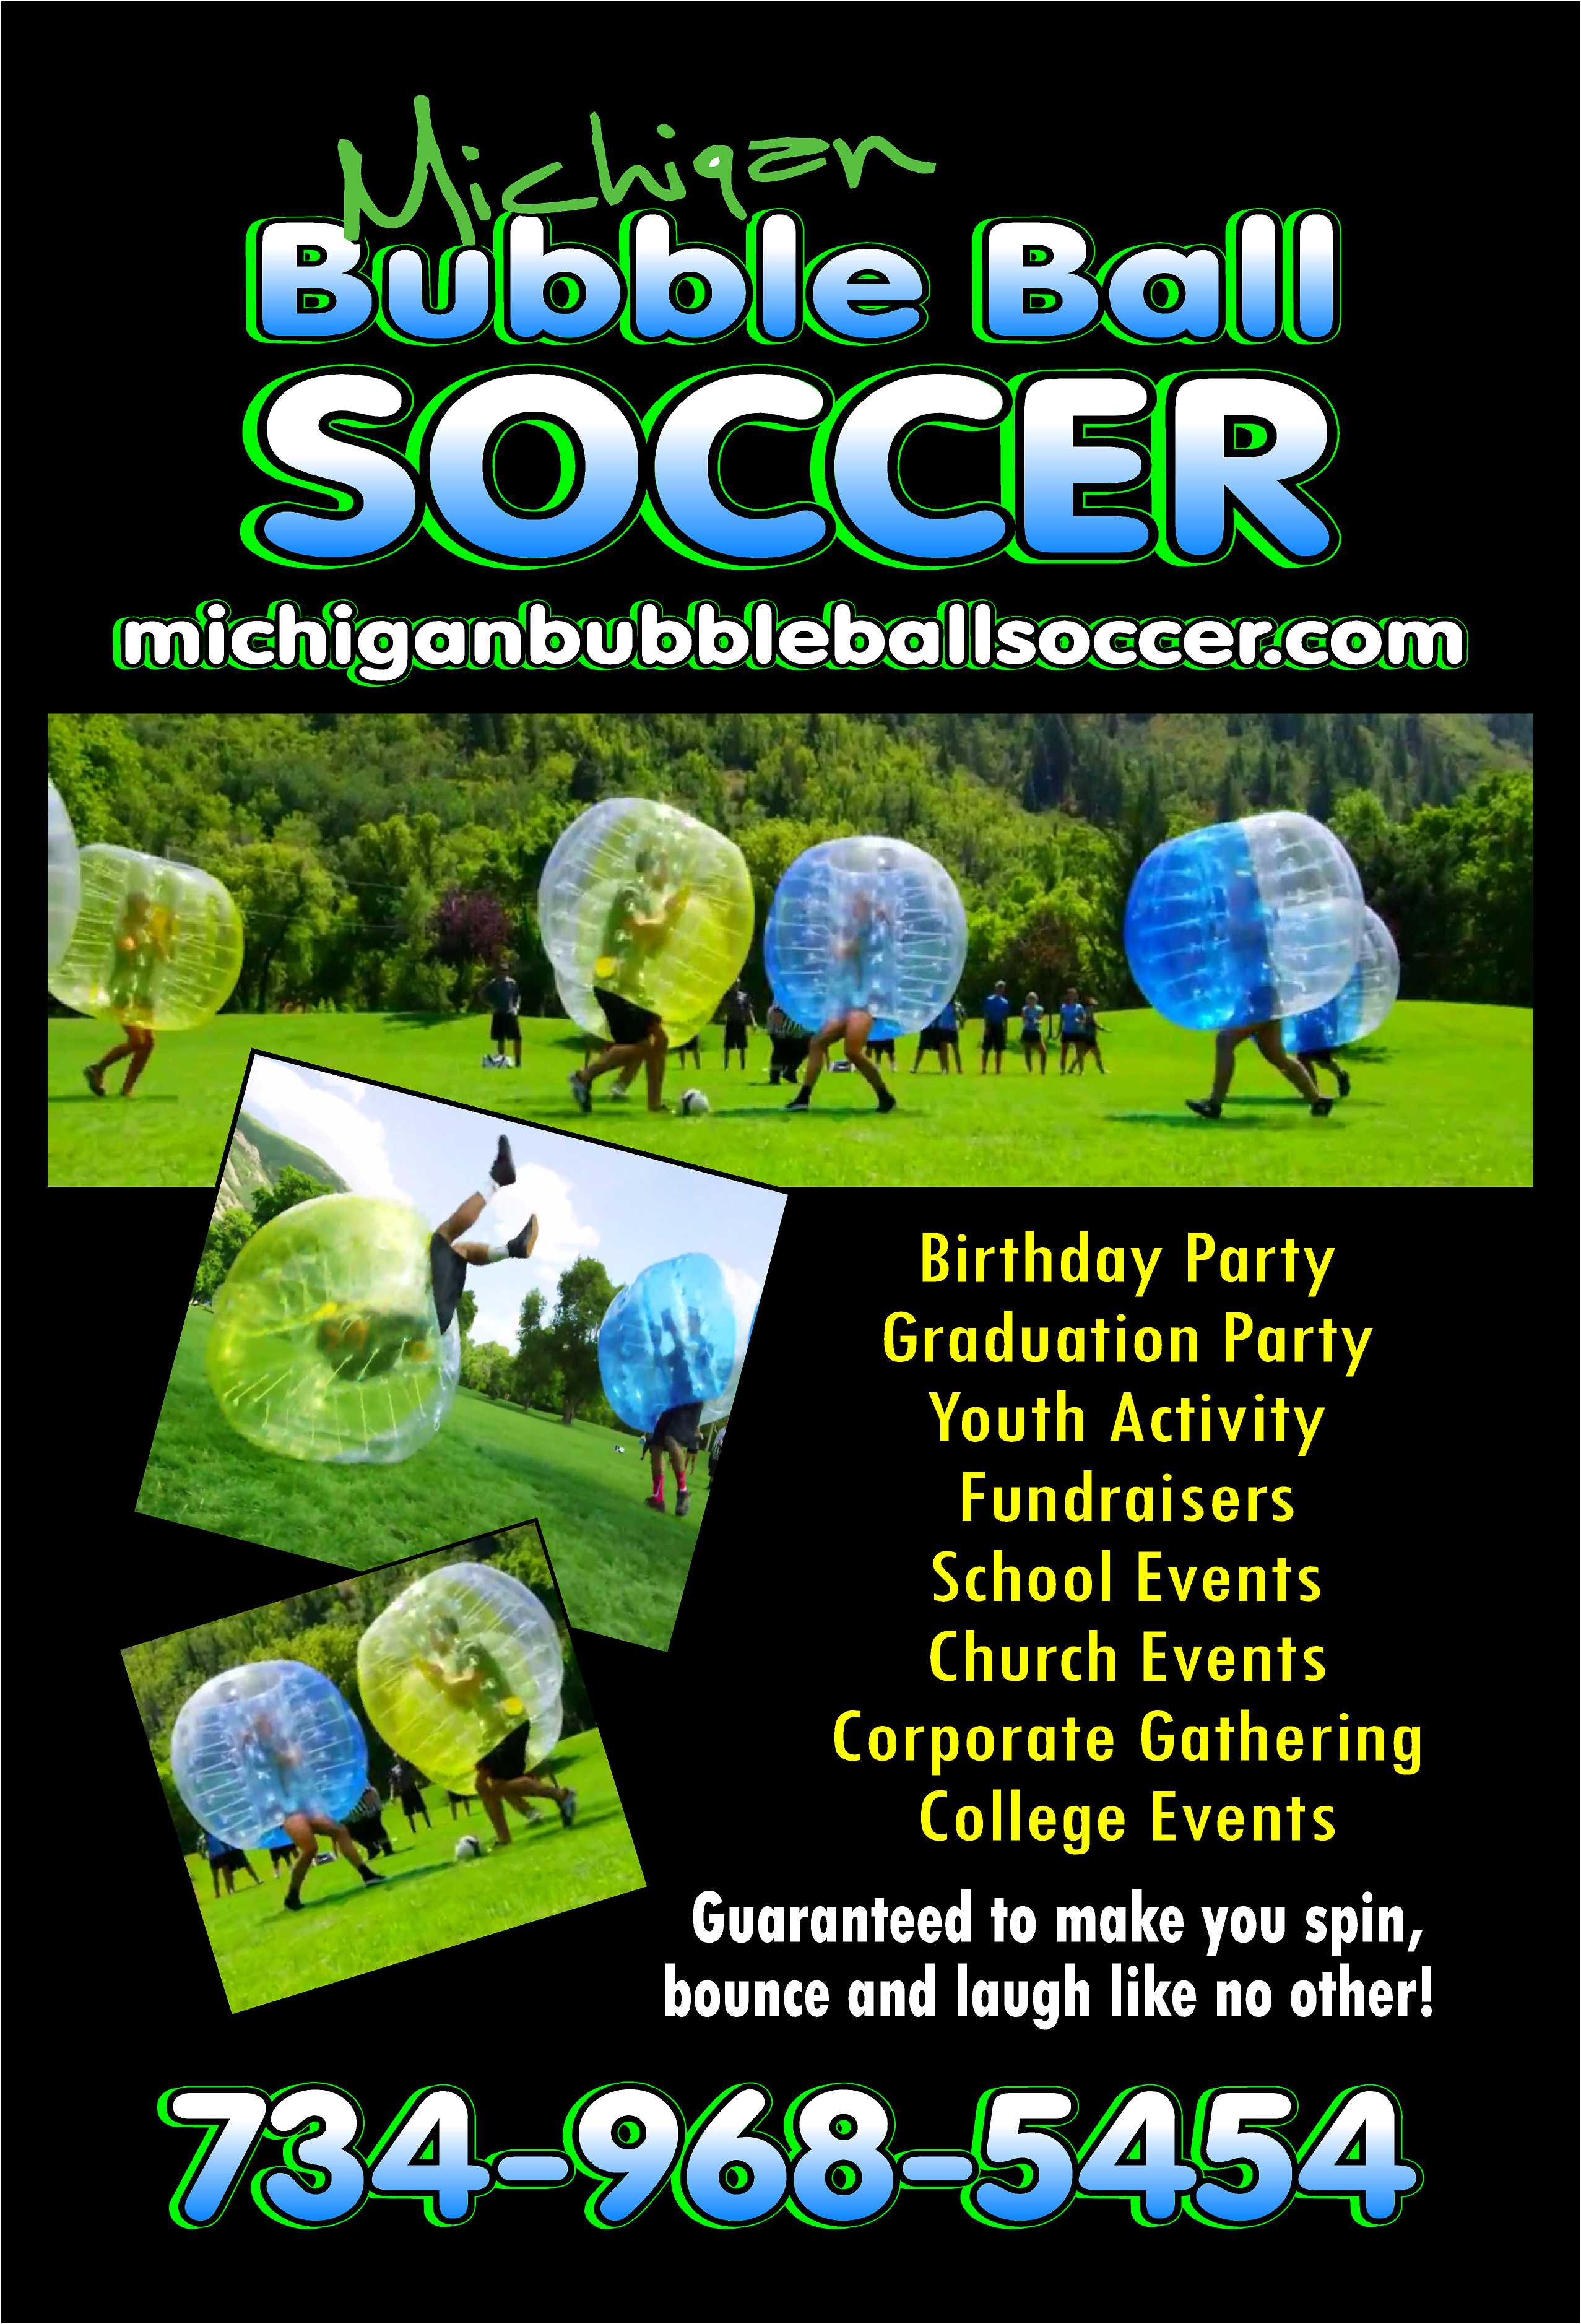 Michigan Bubble Ball Soccer (michiganbubbleballsoccer.com): Birthday Party, Graduation Part, Youth Activity, Fundraisers, School Events, Church Events, Corporate Gathering, College Events, Guaranteed to make you spin, bounce and laugh like no other! 734-968-5454.